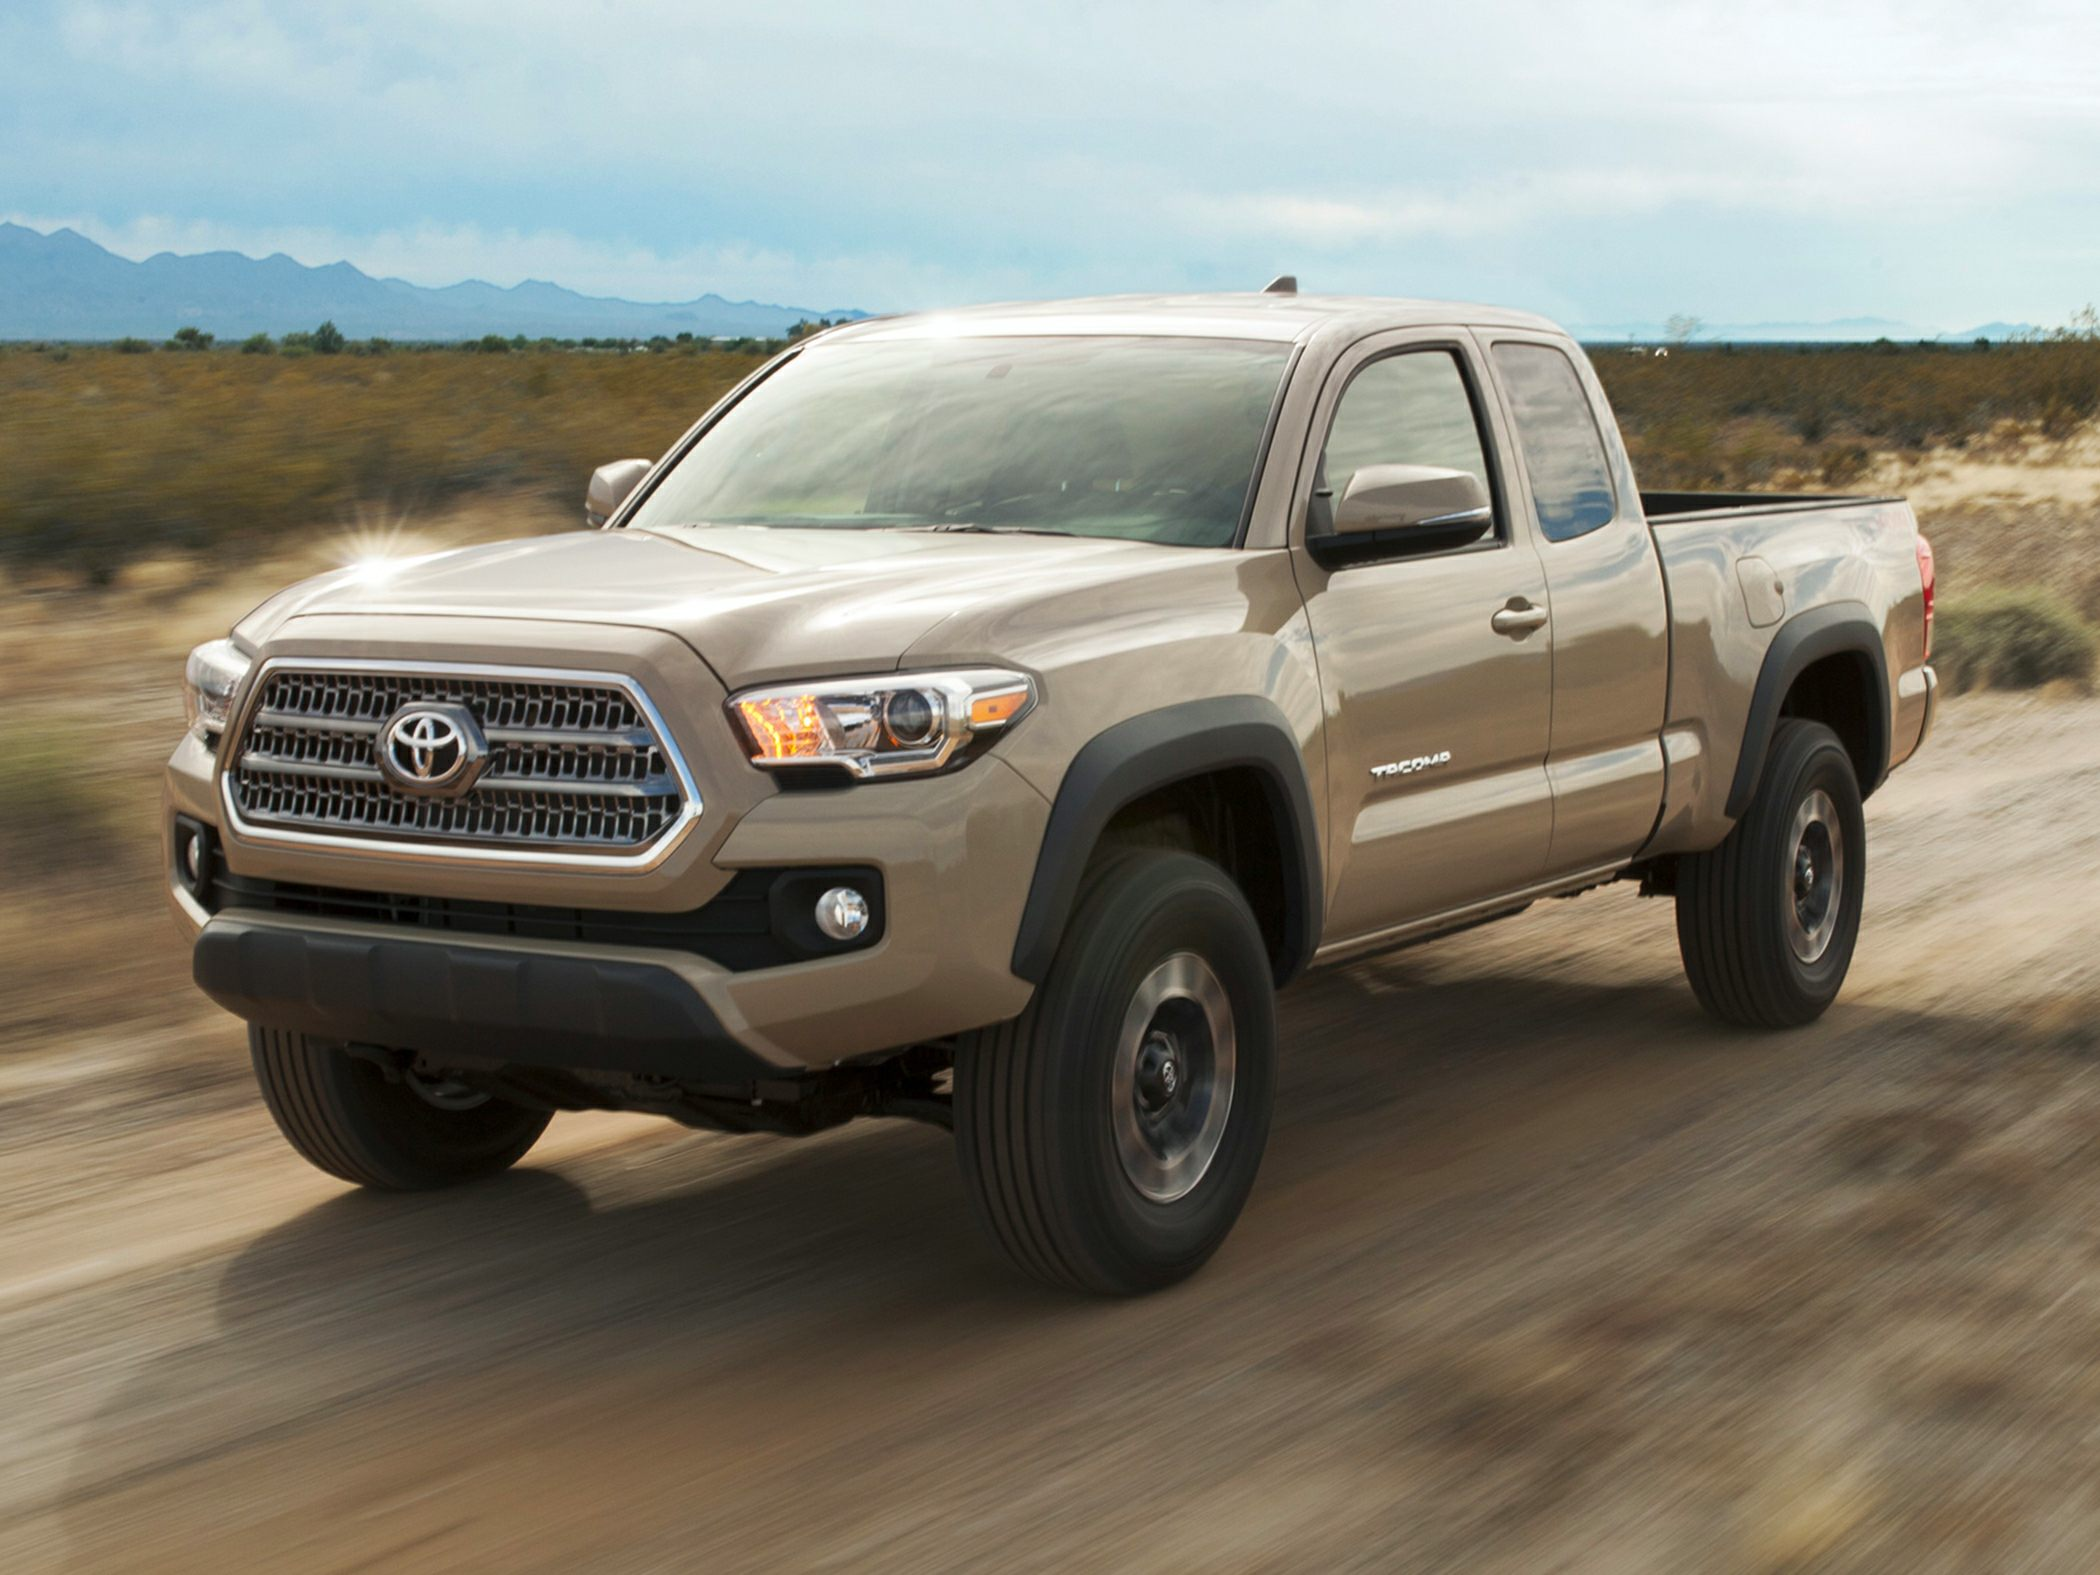 2017 toyota tacoma deals prices incentives leases overview carsdirect. Black Bedroom Furniture Sets. Home Design Ideas